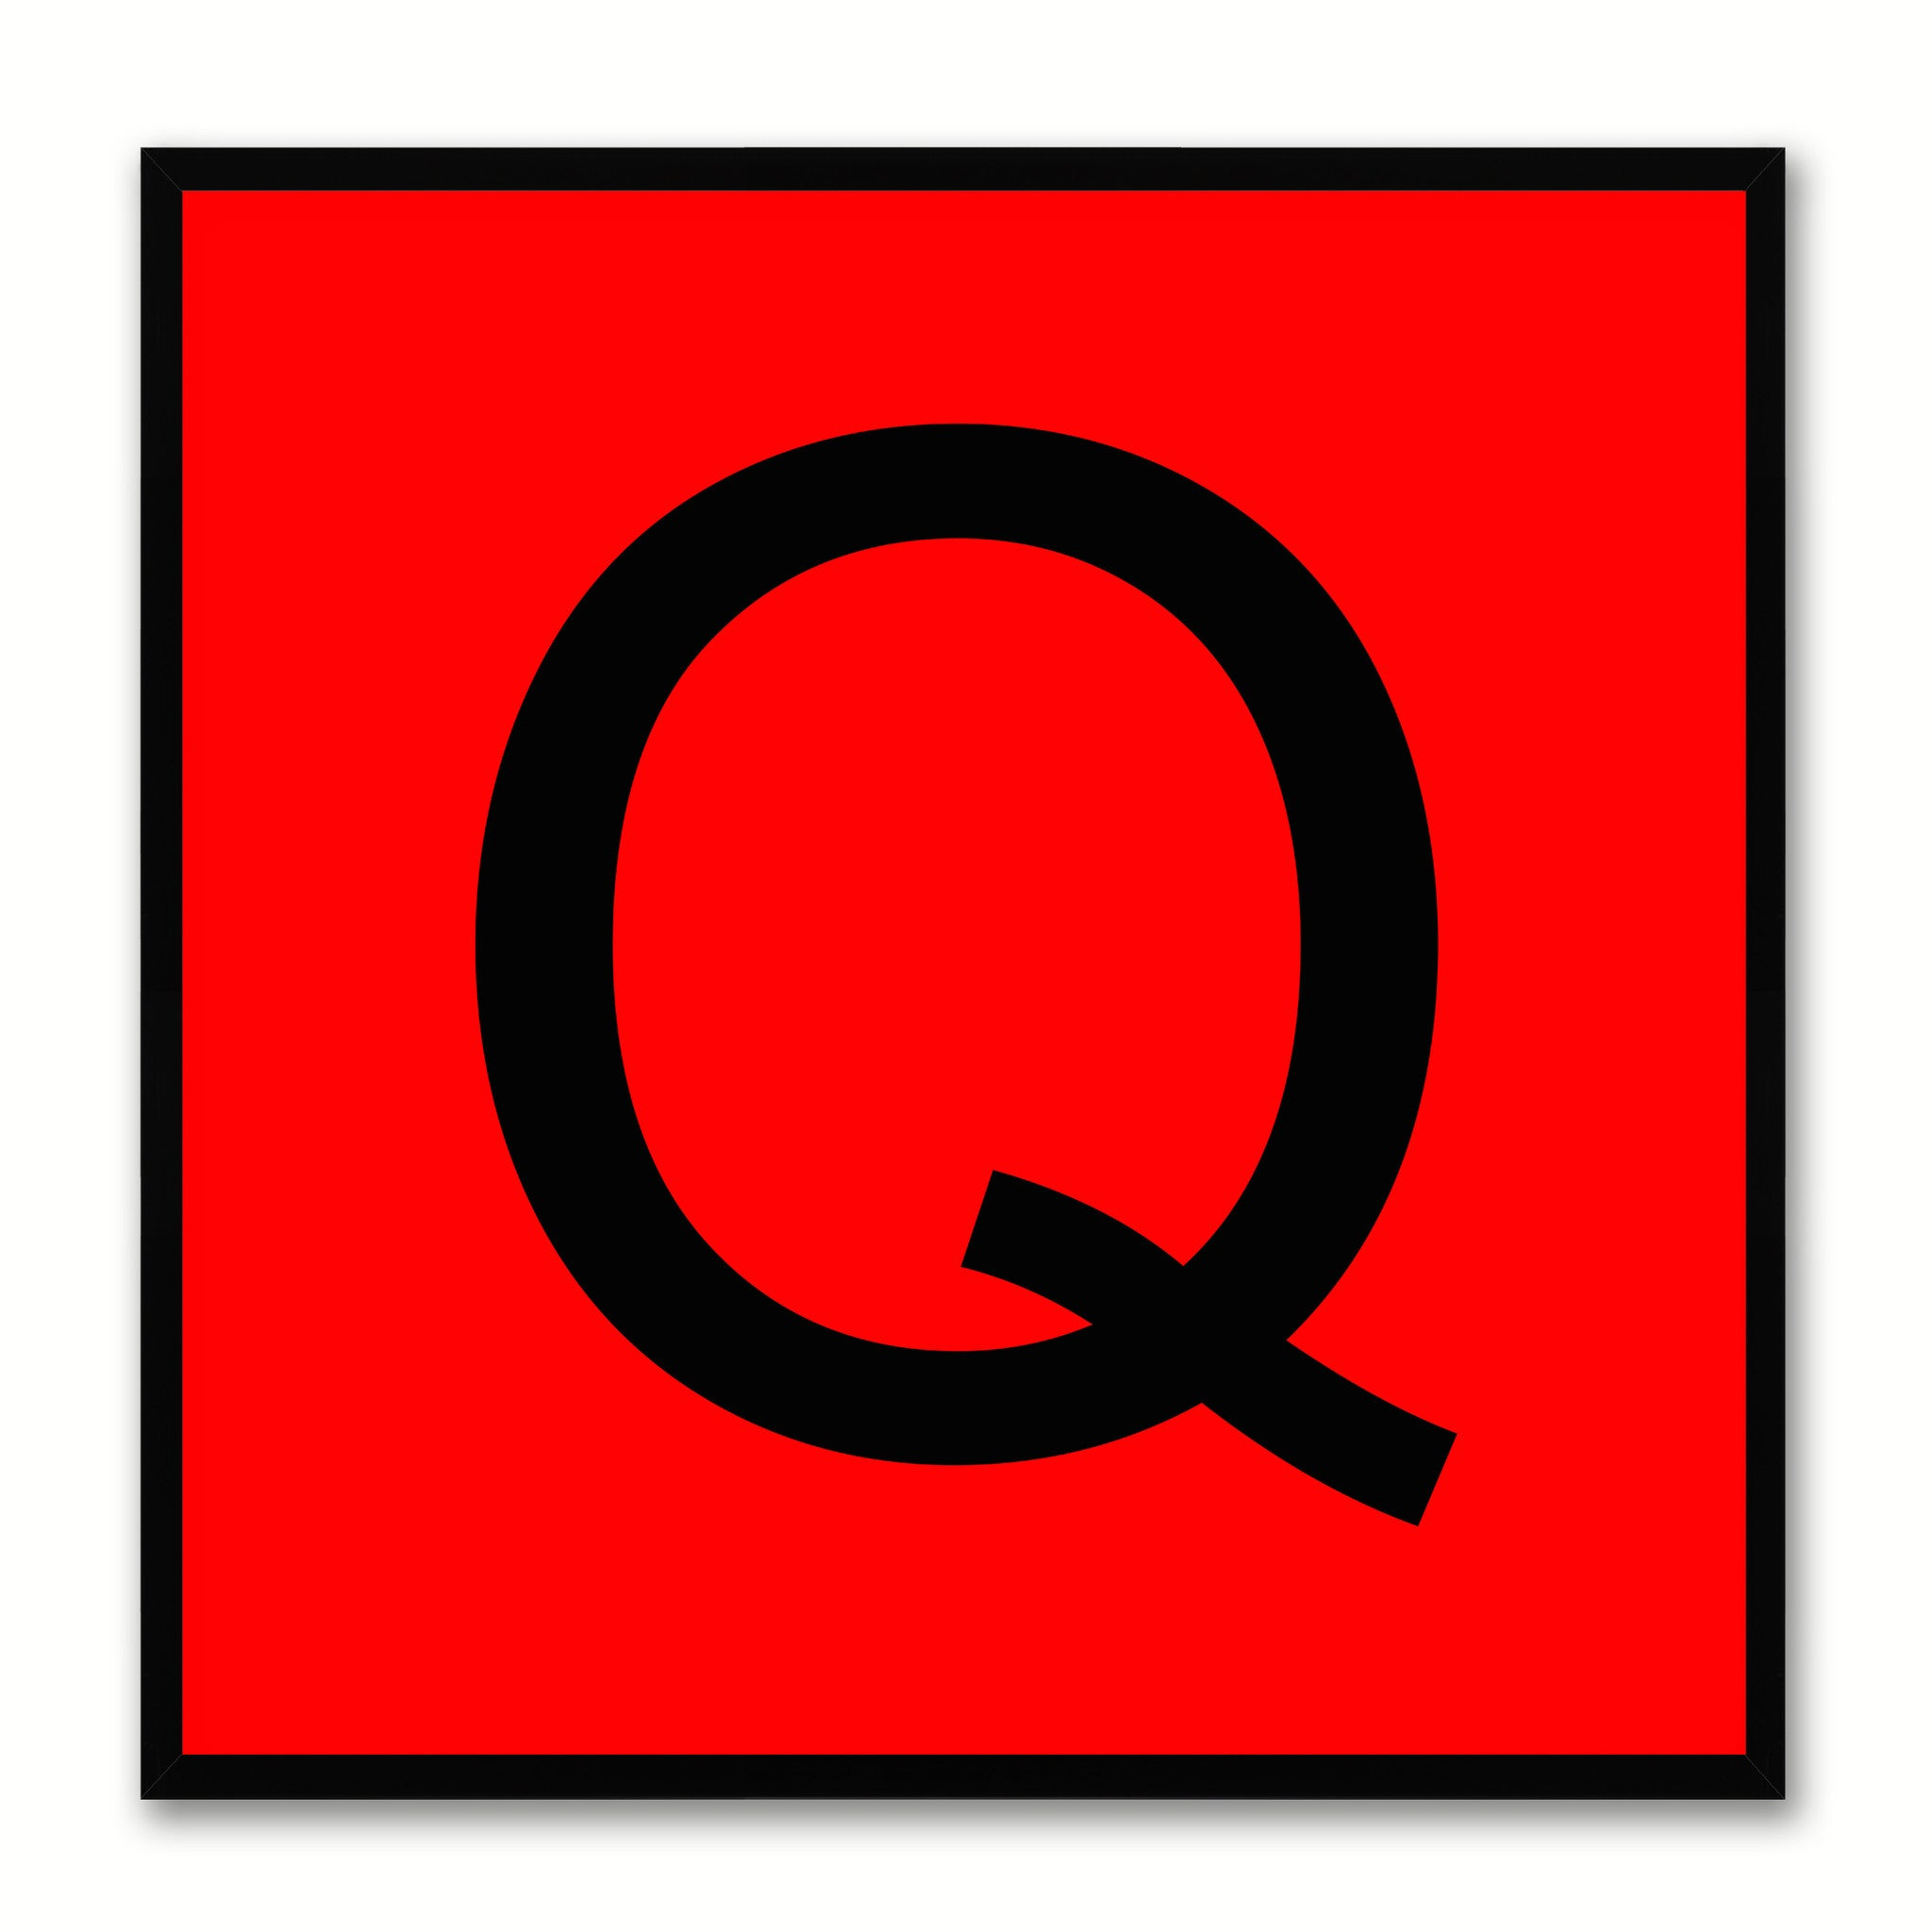 Alphabet Q Red Canvas Print Black Frame Kids Bedroom Wall Décor Home Art